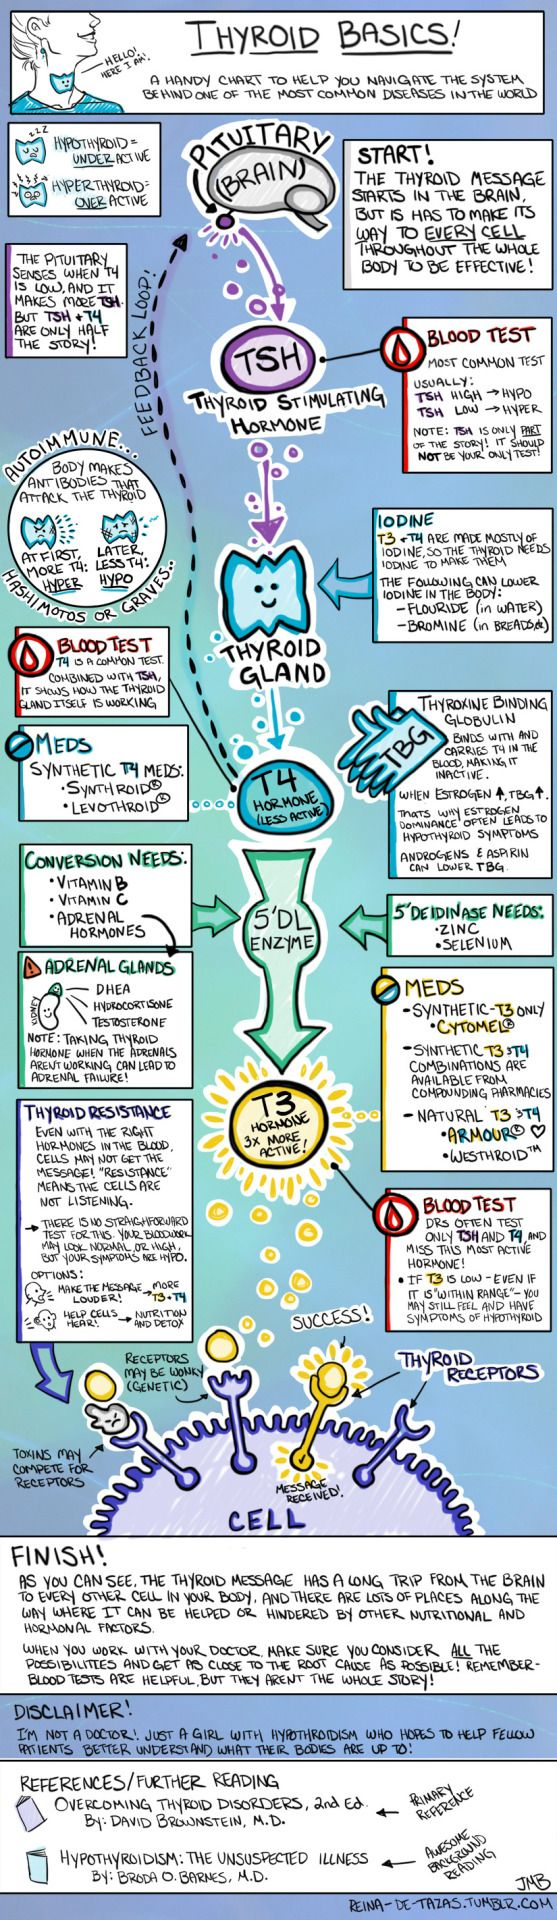 reina-de-tazas: Finally done! Based off a chart that I created for my own reference a while ago; I've shared this with a number of folks who found it helpful, so I decided to turn it into a kind of infographic. The more I read about the thyroid, the more amazed I am at how critically it is tied to our overall quality of life, and almost every aspect of our health. I've experienced this personally - aside from the standard low energy/cold hands/hairloss elements of hypothyroid, I also found…